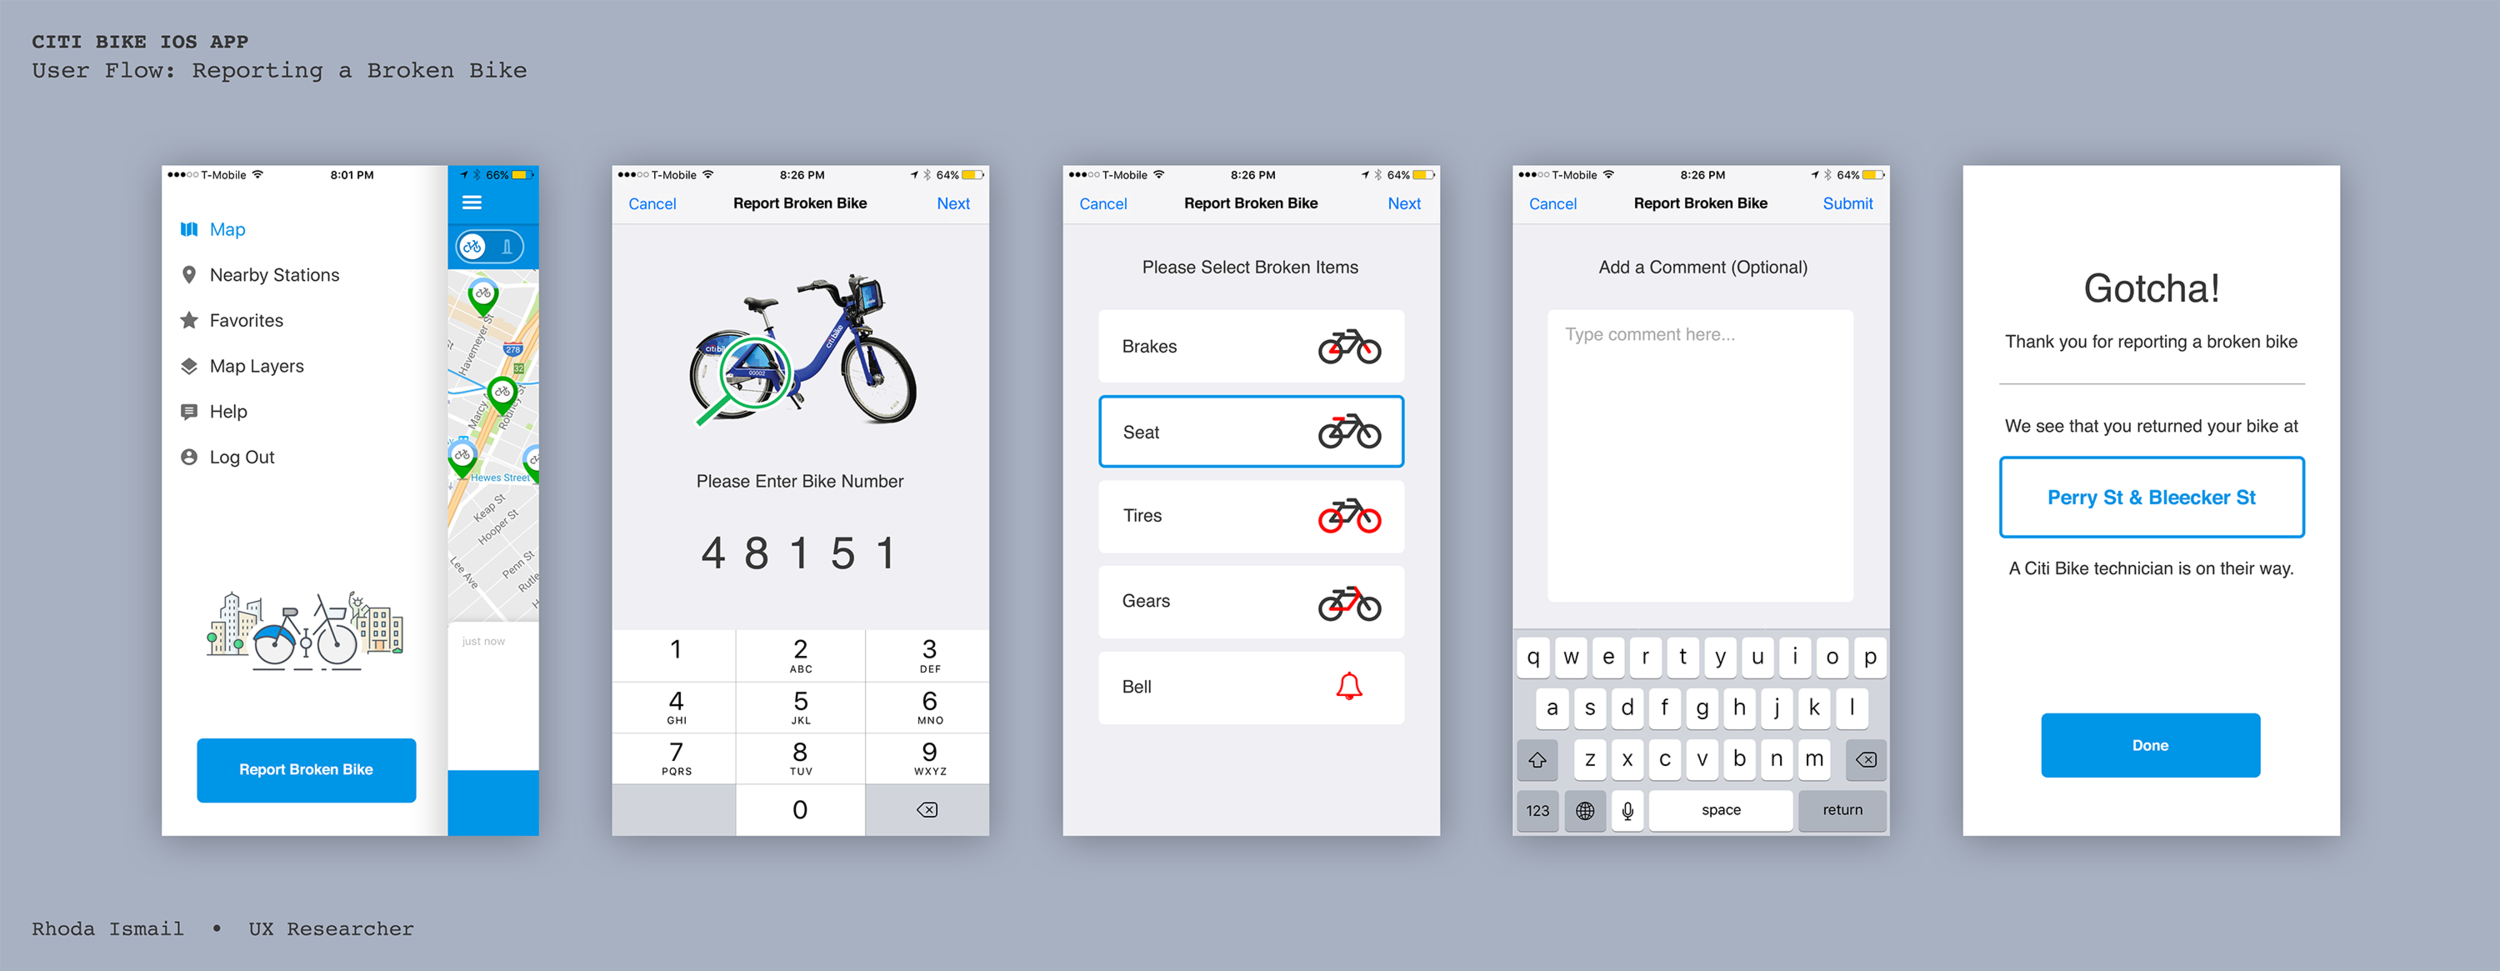 I designed a User Flow along with a visual designer to indicate how the user might report a broken bike right from the Landing Page, on the IOS app.